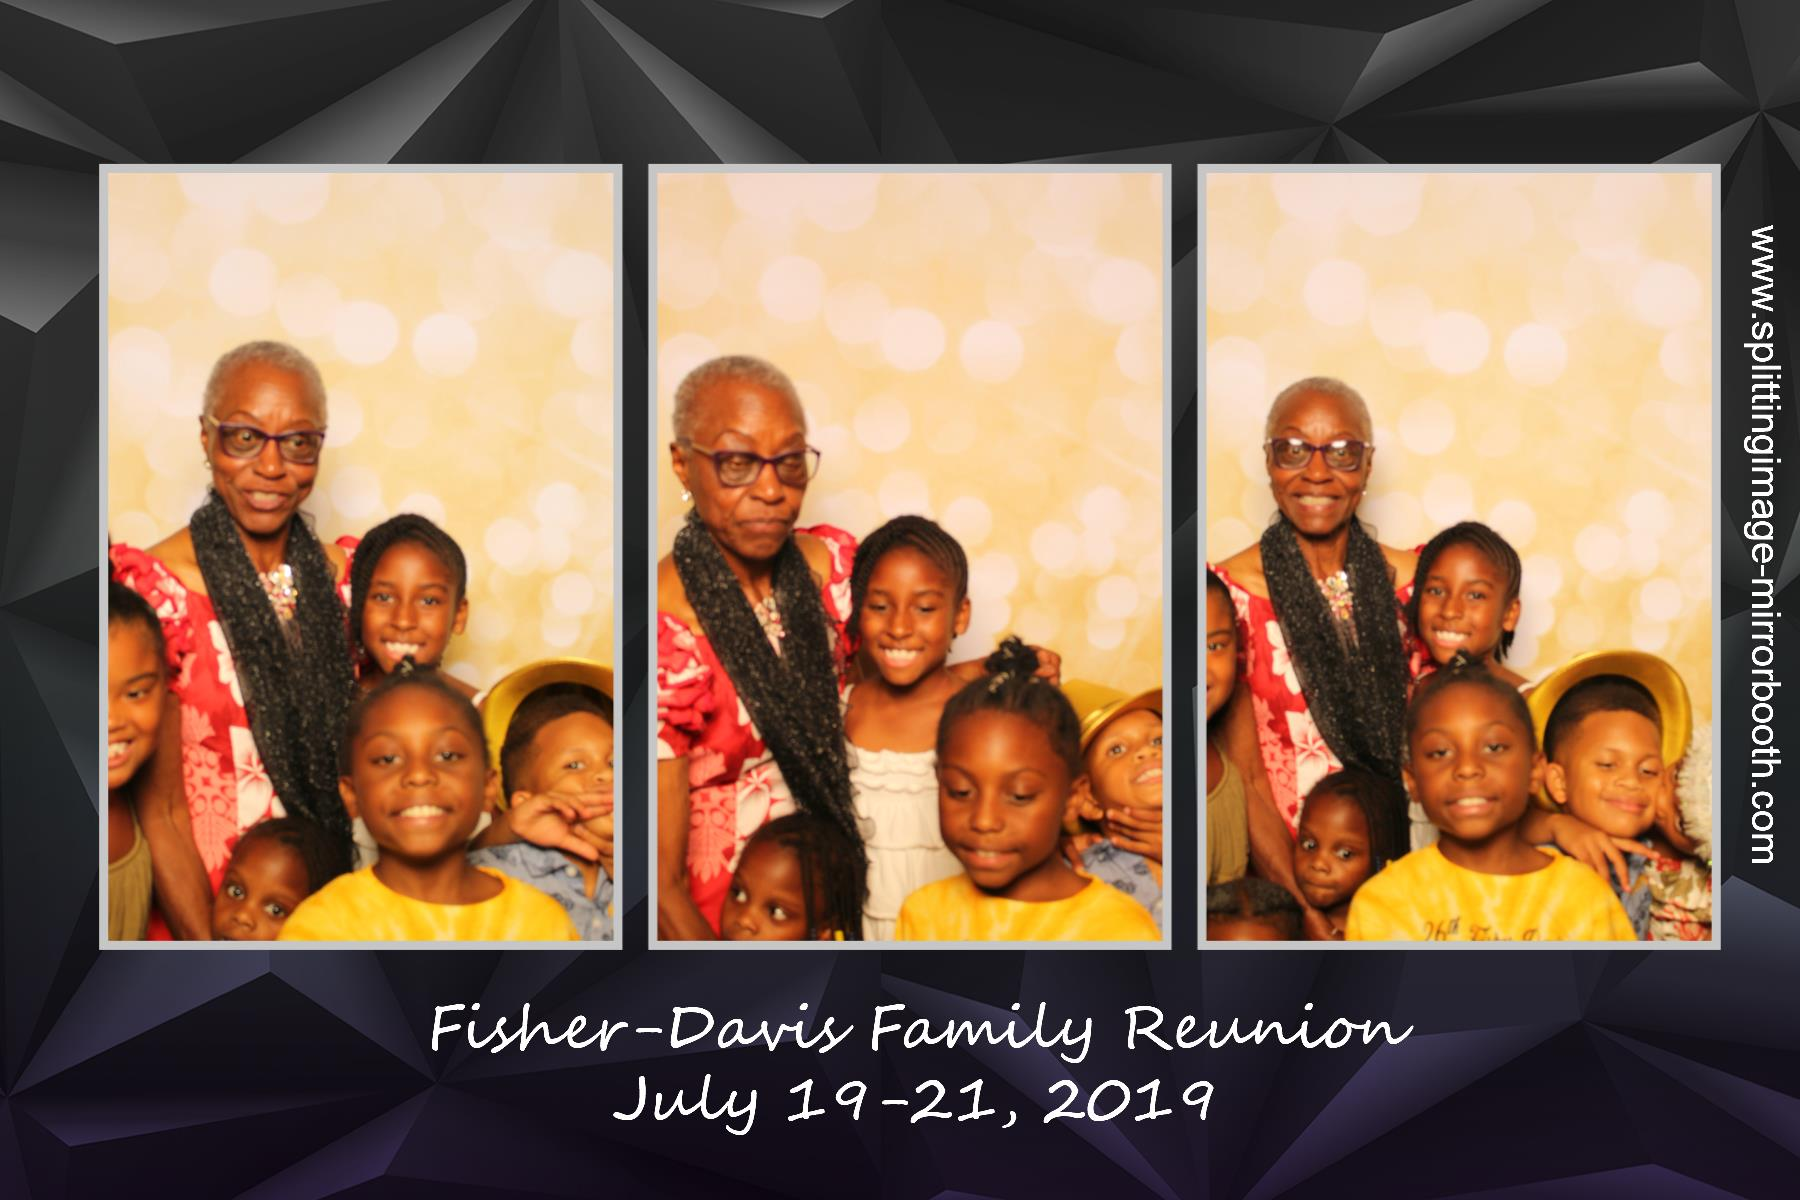 Fisher Davis Family Reunion | View more photos from the event at gallery.splittingimage-mirrorbooth.com/u/Splitting-Image/Fisher-Davis-Family-Reunion